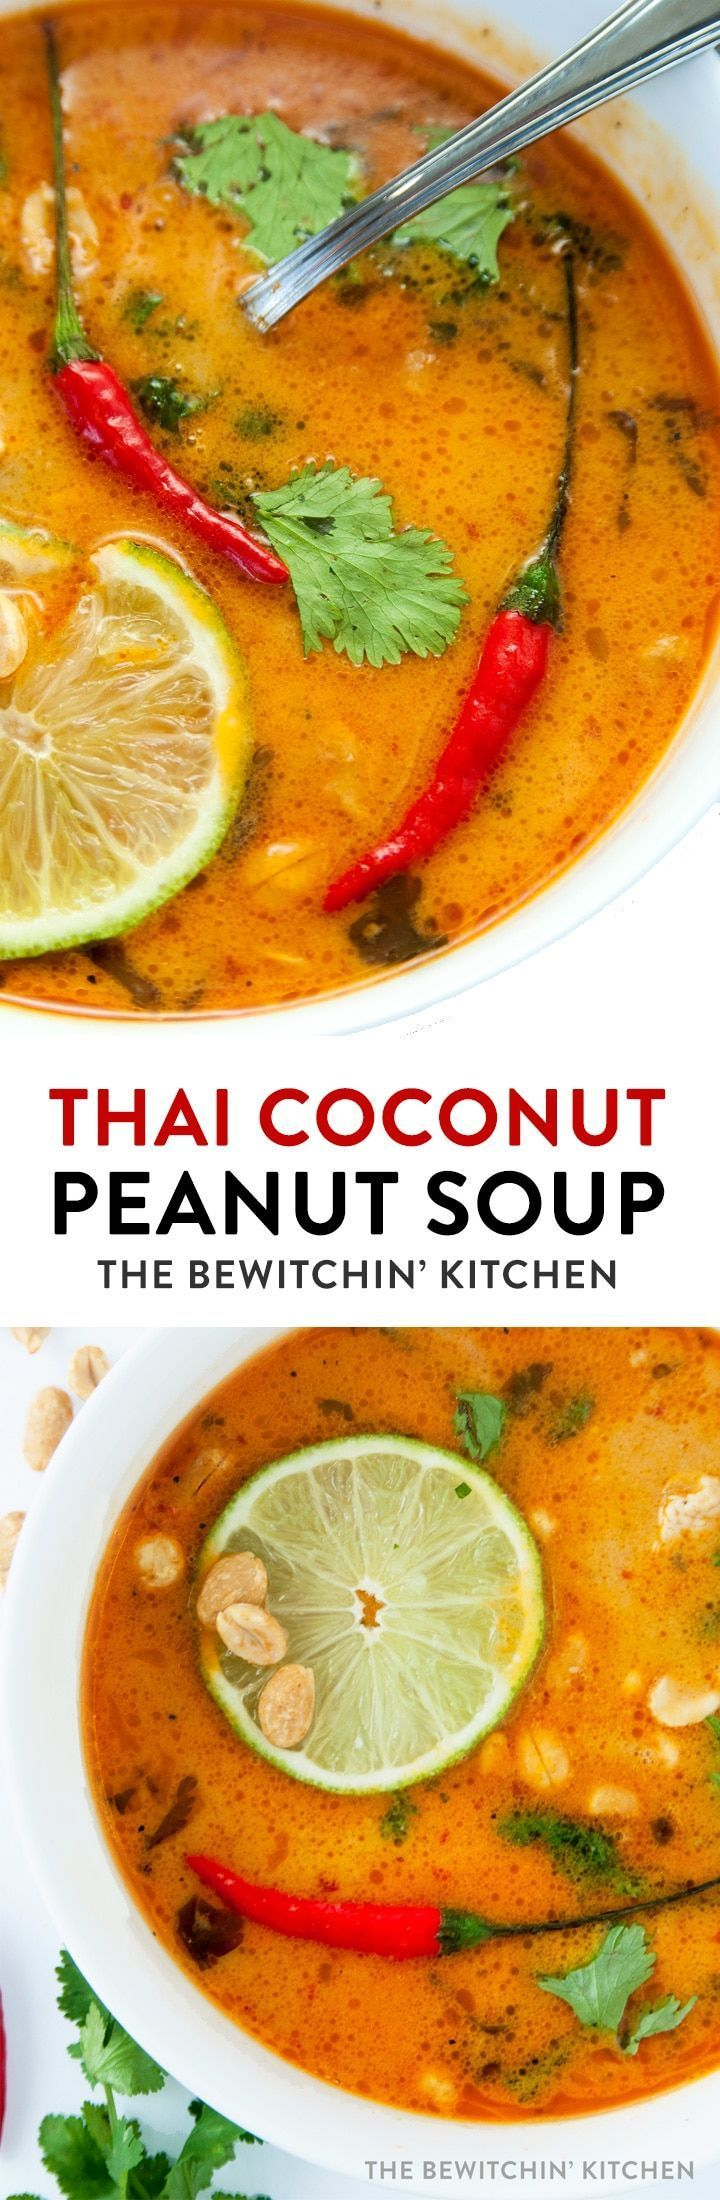 This Thai Coconut Peanut soup recipe makes a delicious and easy dinner. Made with chicken, chili paste, peanut butter, coconut milk and spices makes this perfect for your healthy dinner recipes board.